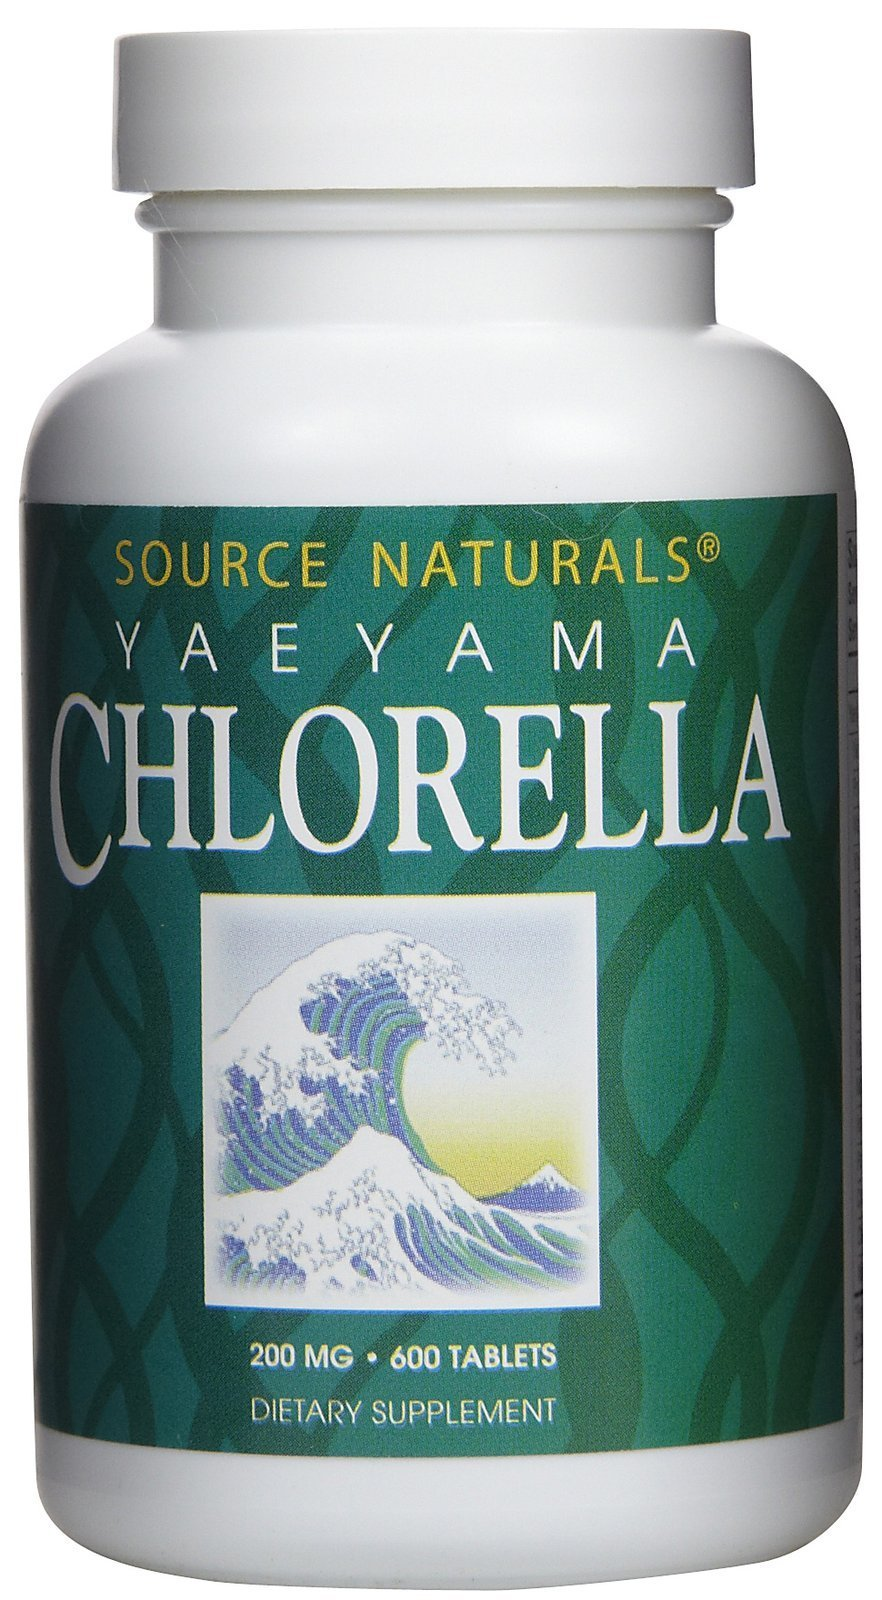 Source Naturals Yaeyama Chlorella 200mg Algae Superfood Nutritional Supplement Source Of B-12, Iron, Protein & Vitamin A - 600 Tablets